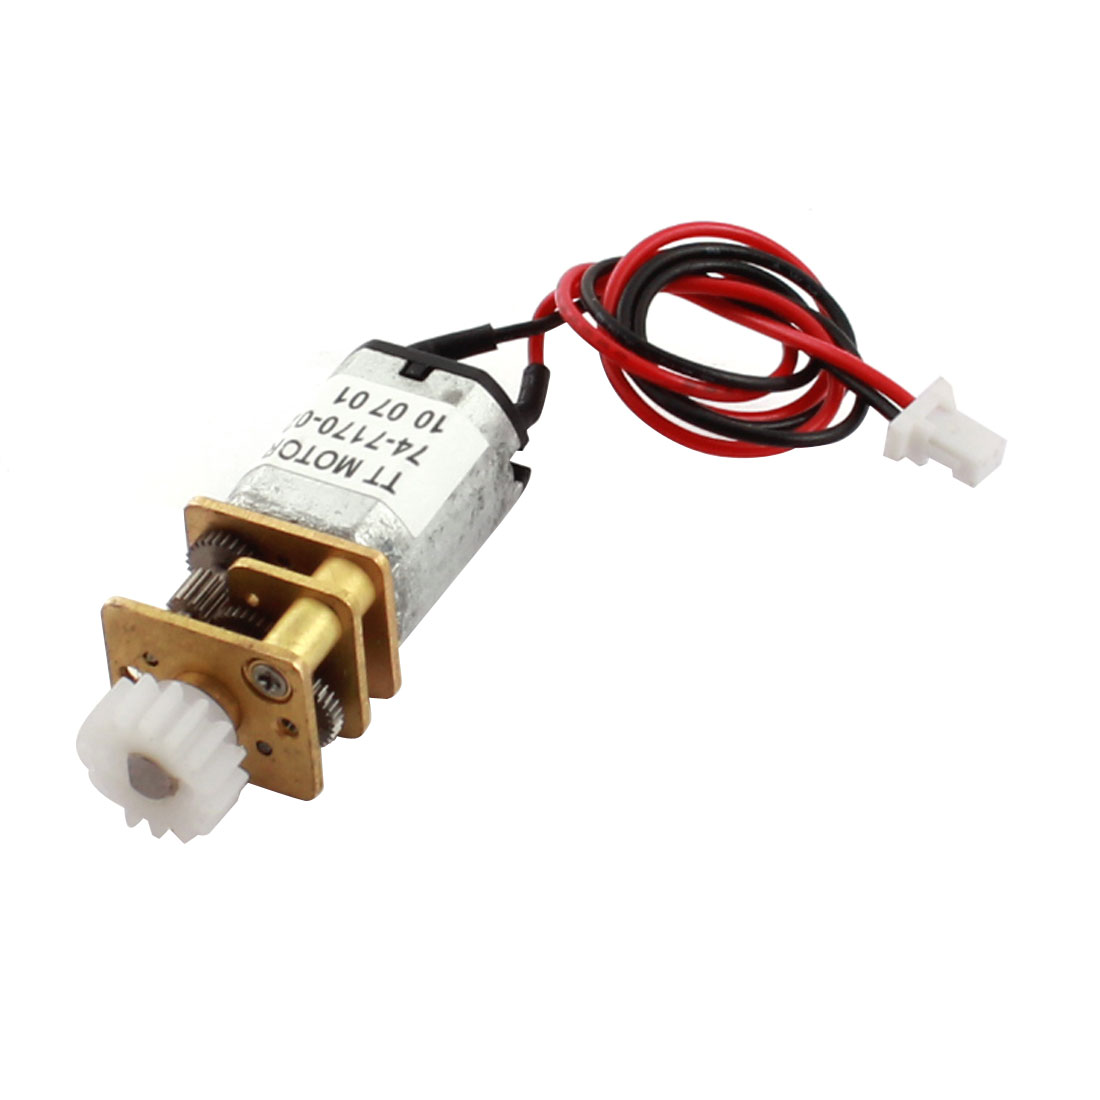 DC6V 890RPM N20 32mm Height Metal Micro Gear Motor for Toy Robot